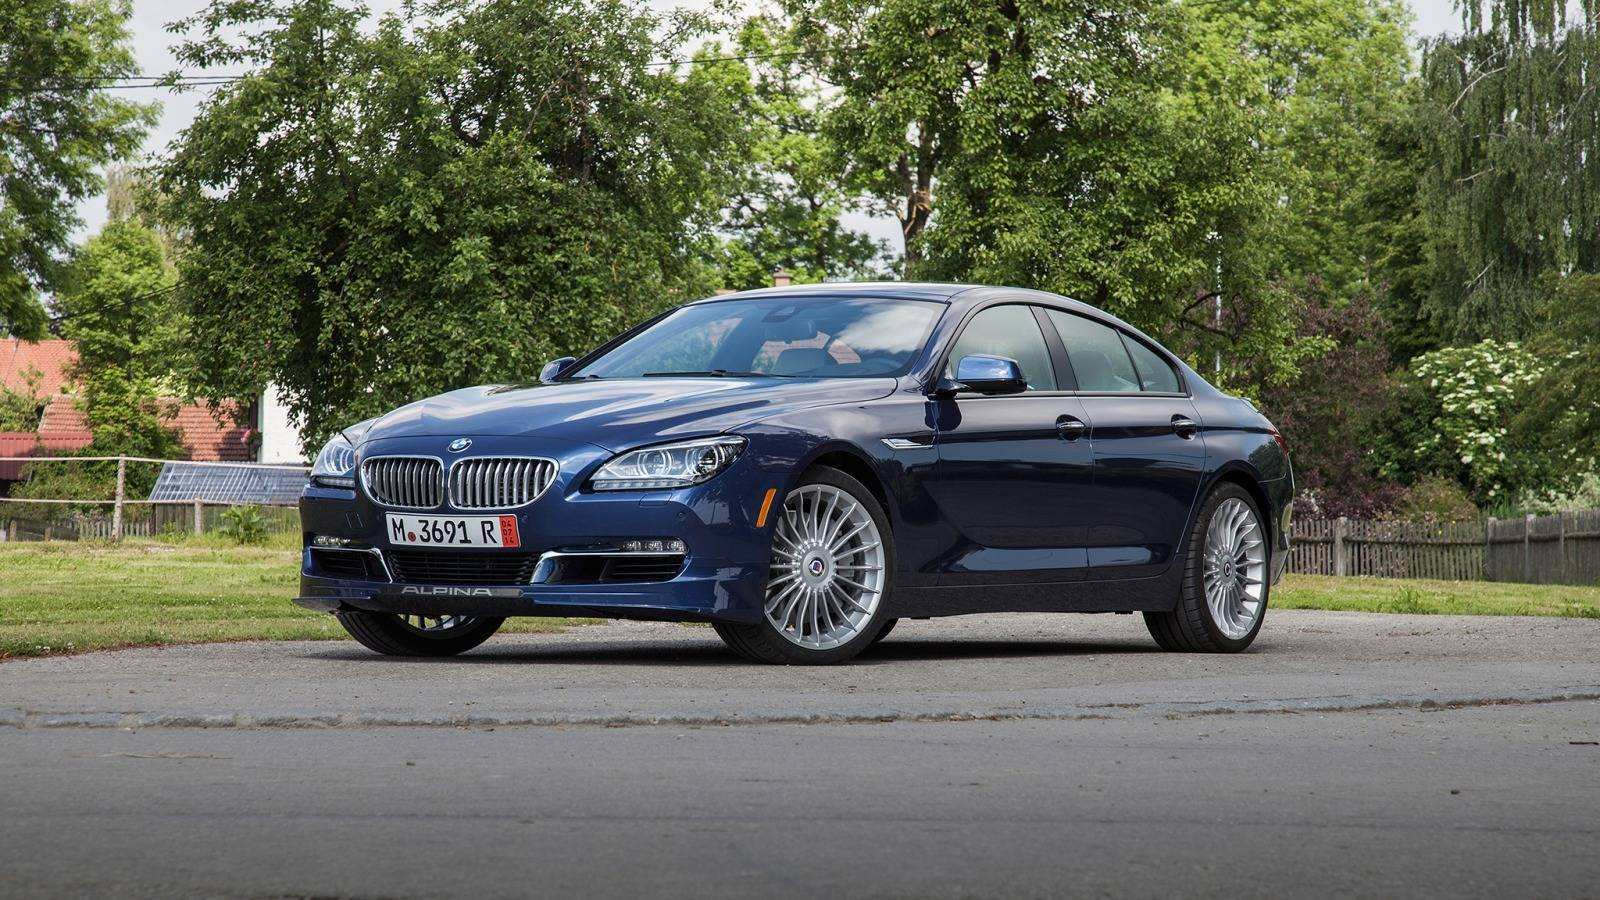 76 Concept of BMW Alpina B8 2020 Model by BMW Alpina B8 2020